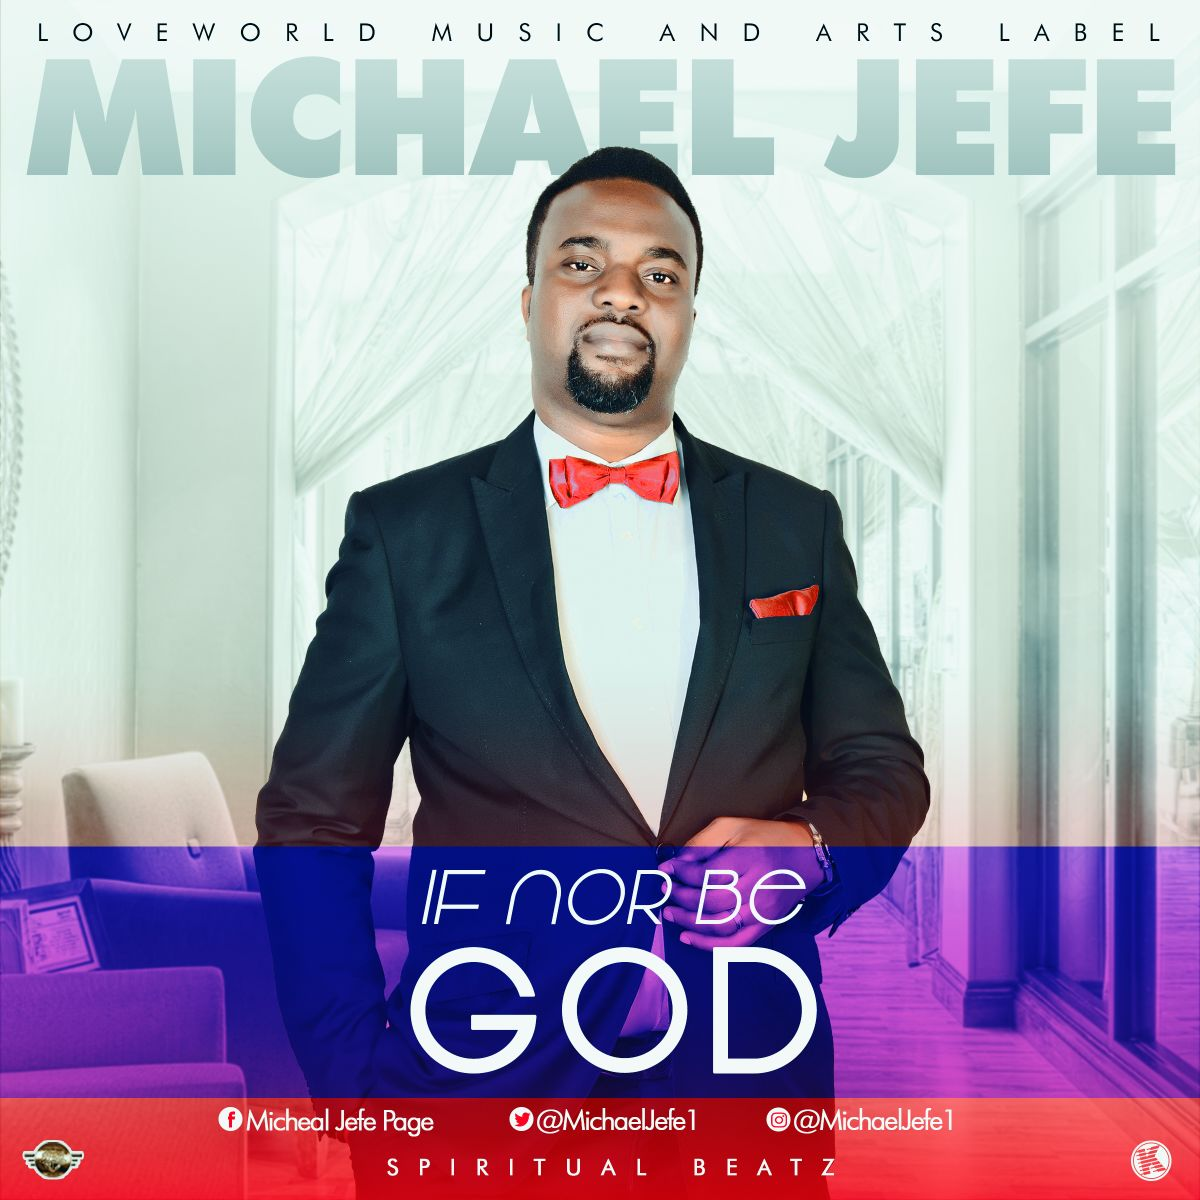 IF NO BE GOD - Michael Jefe [@MichaelJefe1]